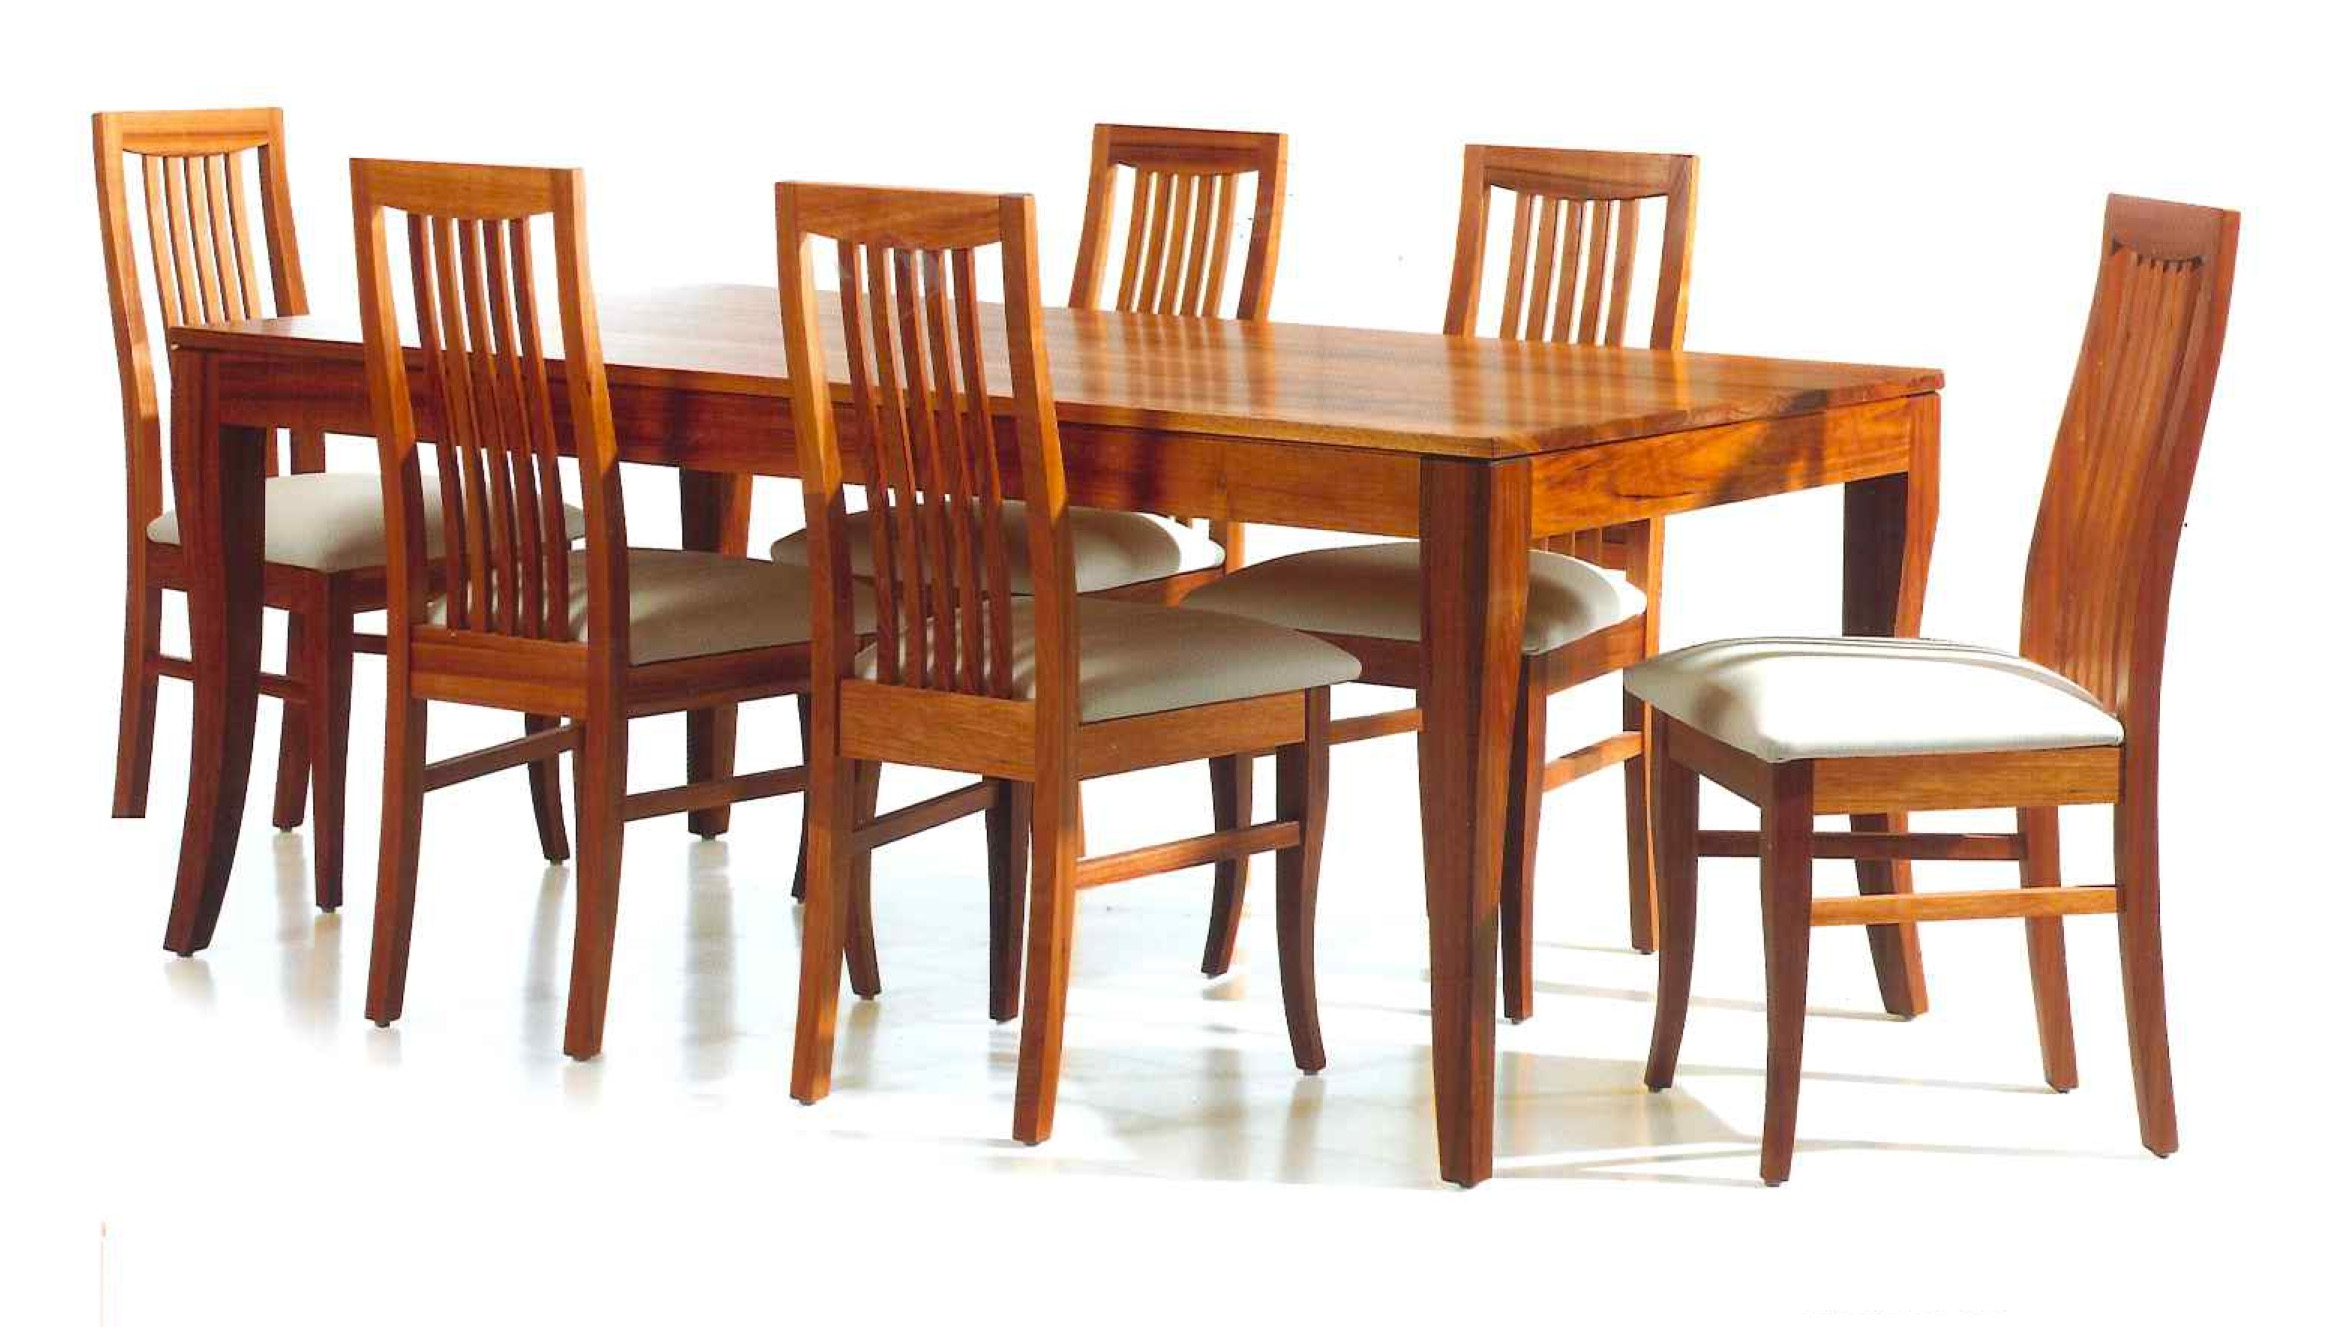 Dining Tables Chairs In Trendy Chair : Dining Table Chairs Top Dining Table Chairs Small Dining (View 8 of 25)